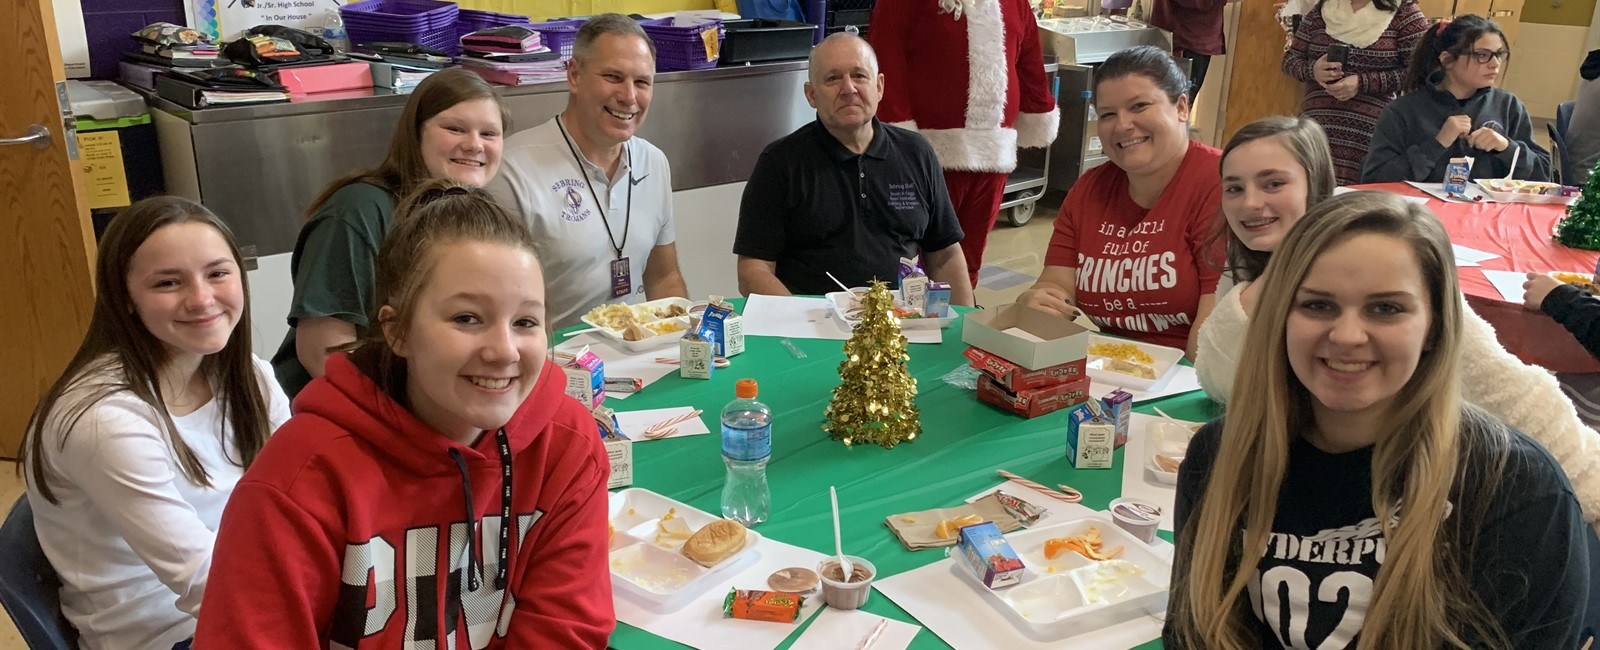 What a festive holiday lunch with students and staff at McKinley!